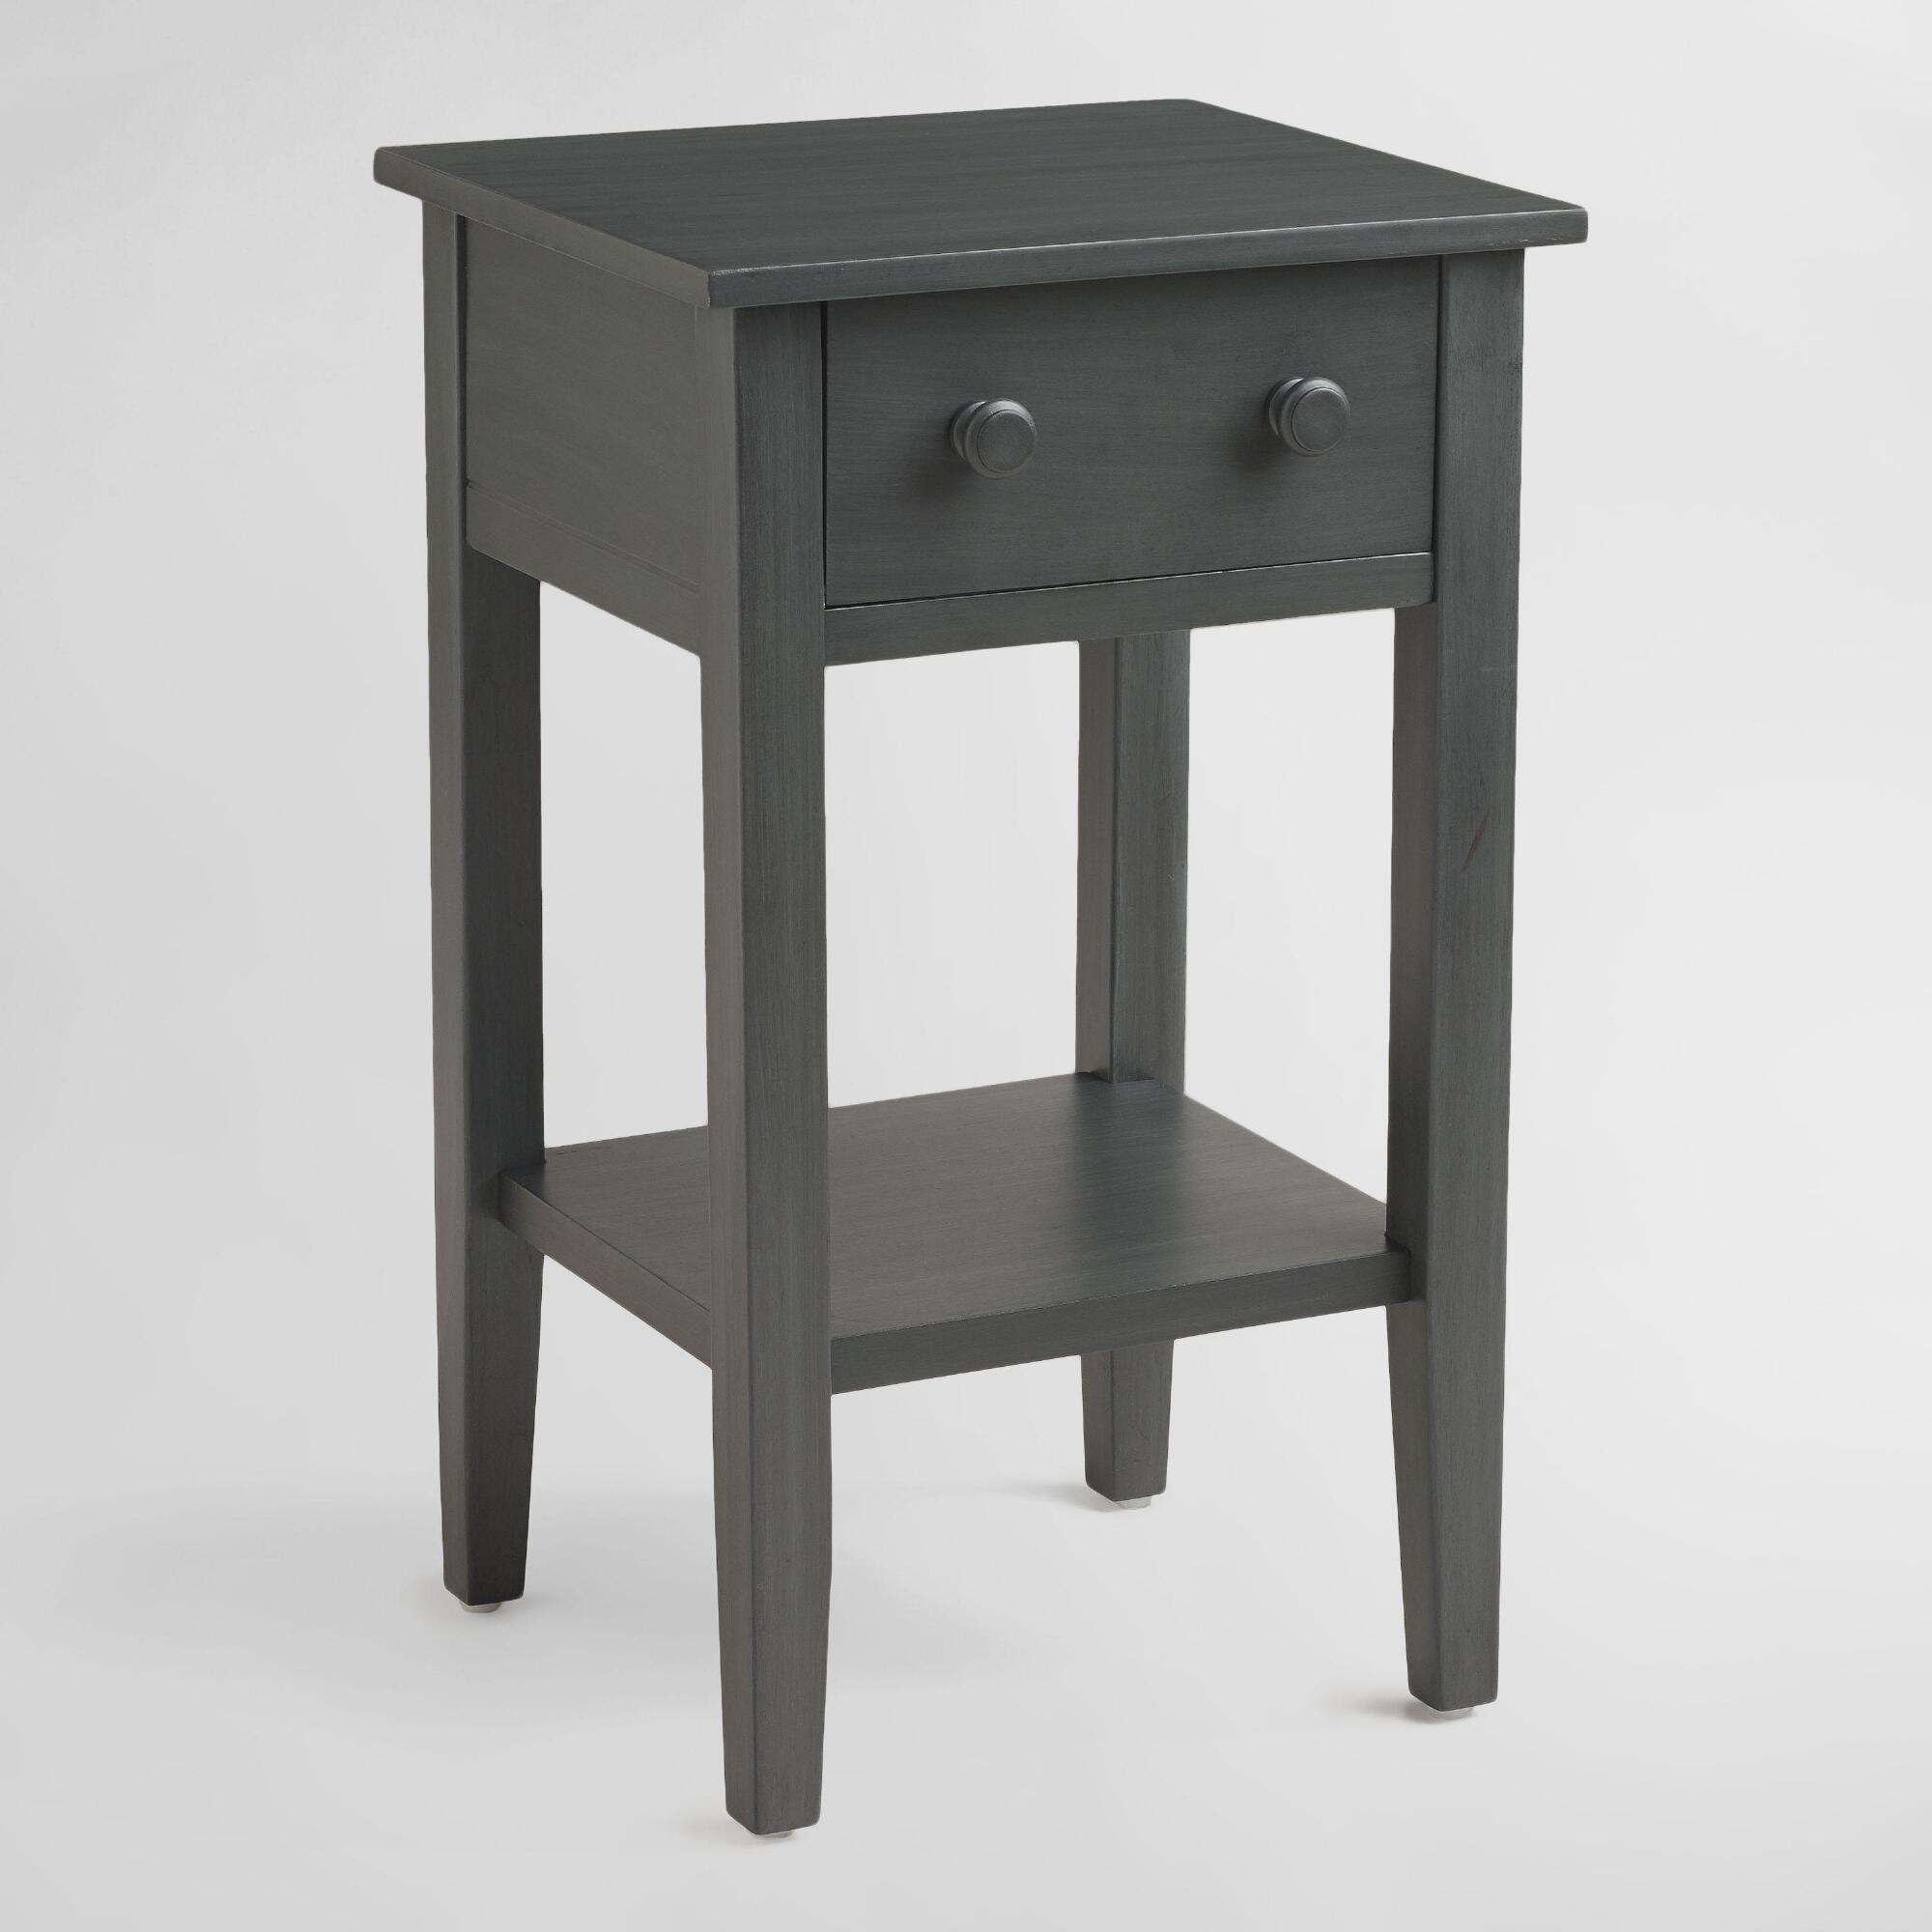 nightstands bedside tables vanity sets world market iipsrv fcgi round accent table cloths tobacco blue sara nightstand vintage side with drawer white drawers west elm top black